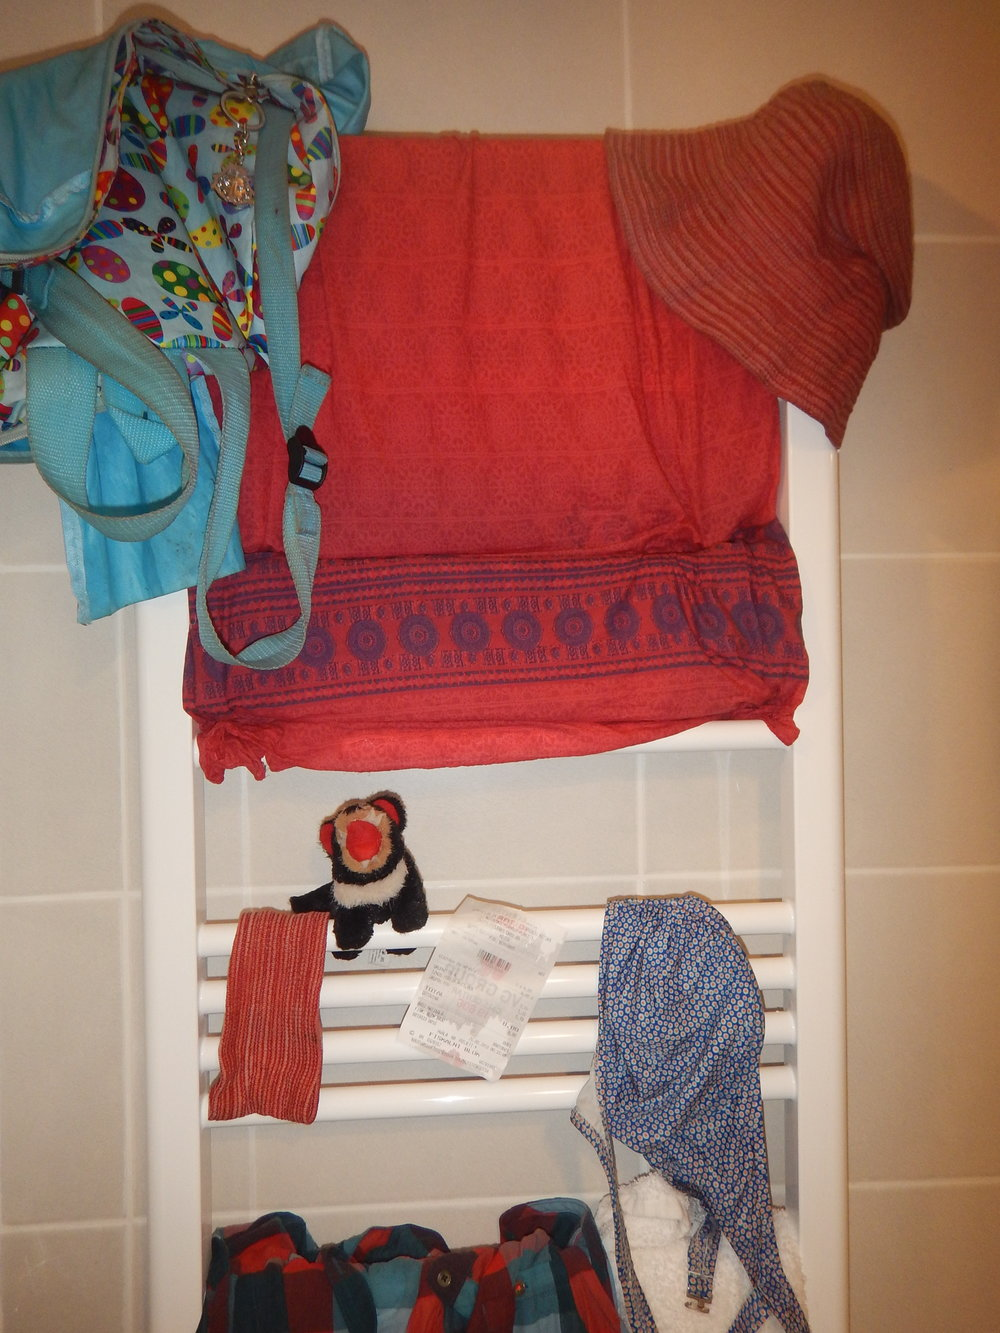 A sodden Harri, hanging out to dry on the towel warmer!! Kotor, Montenegro.